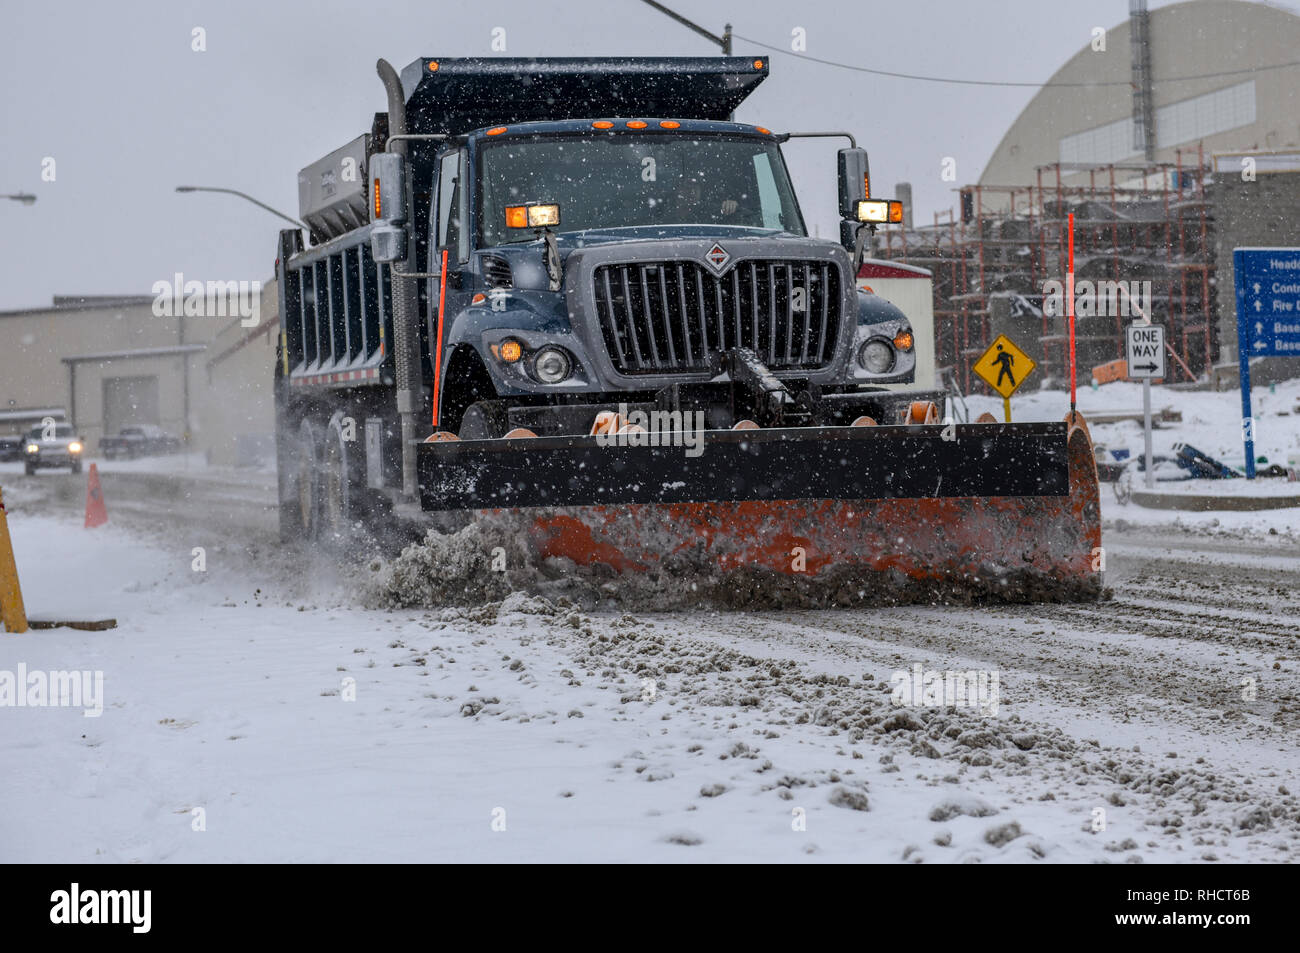 Tech. Sgt. Jason Nelson of the 171st Air Refueling Wing, Civil Engineer Squadron plows the snow to clear the roads during this mornings snowfall near Pittsburgh, Feb. 1, 2019. Nelson spent most of his morning making sure all commercial vehicles had clear, safe roads to travel on. (U.S. Air National Guard photo by Staff Sgt. Bryan Hoover) Stock Photo